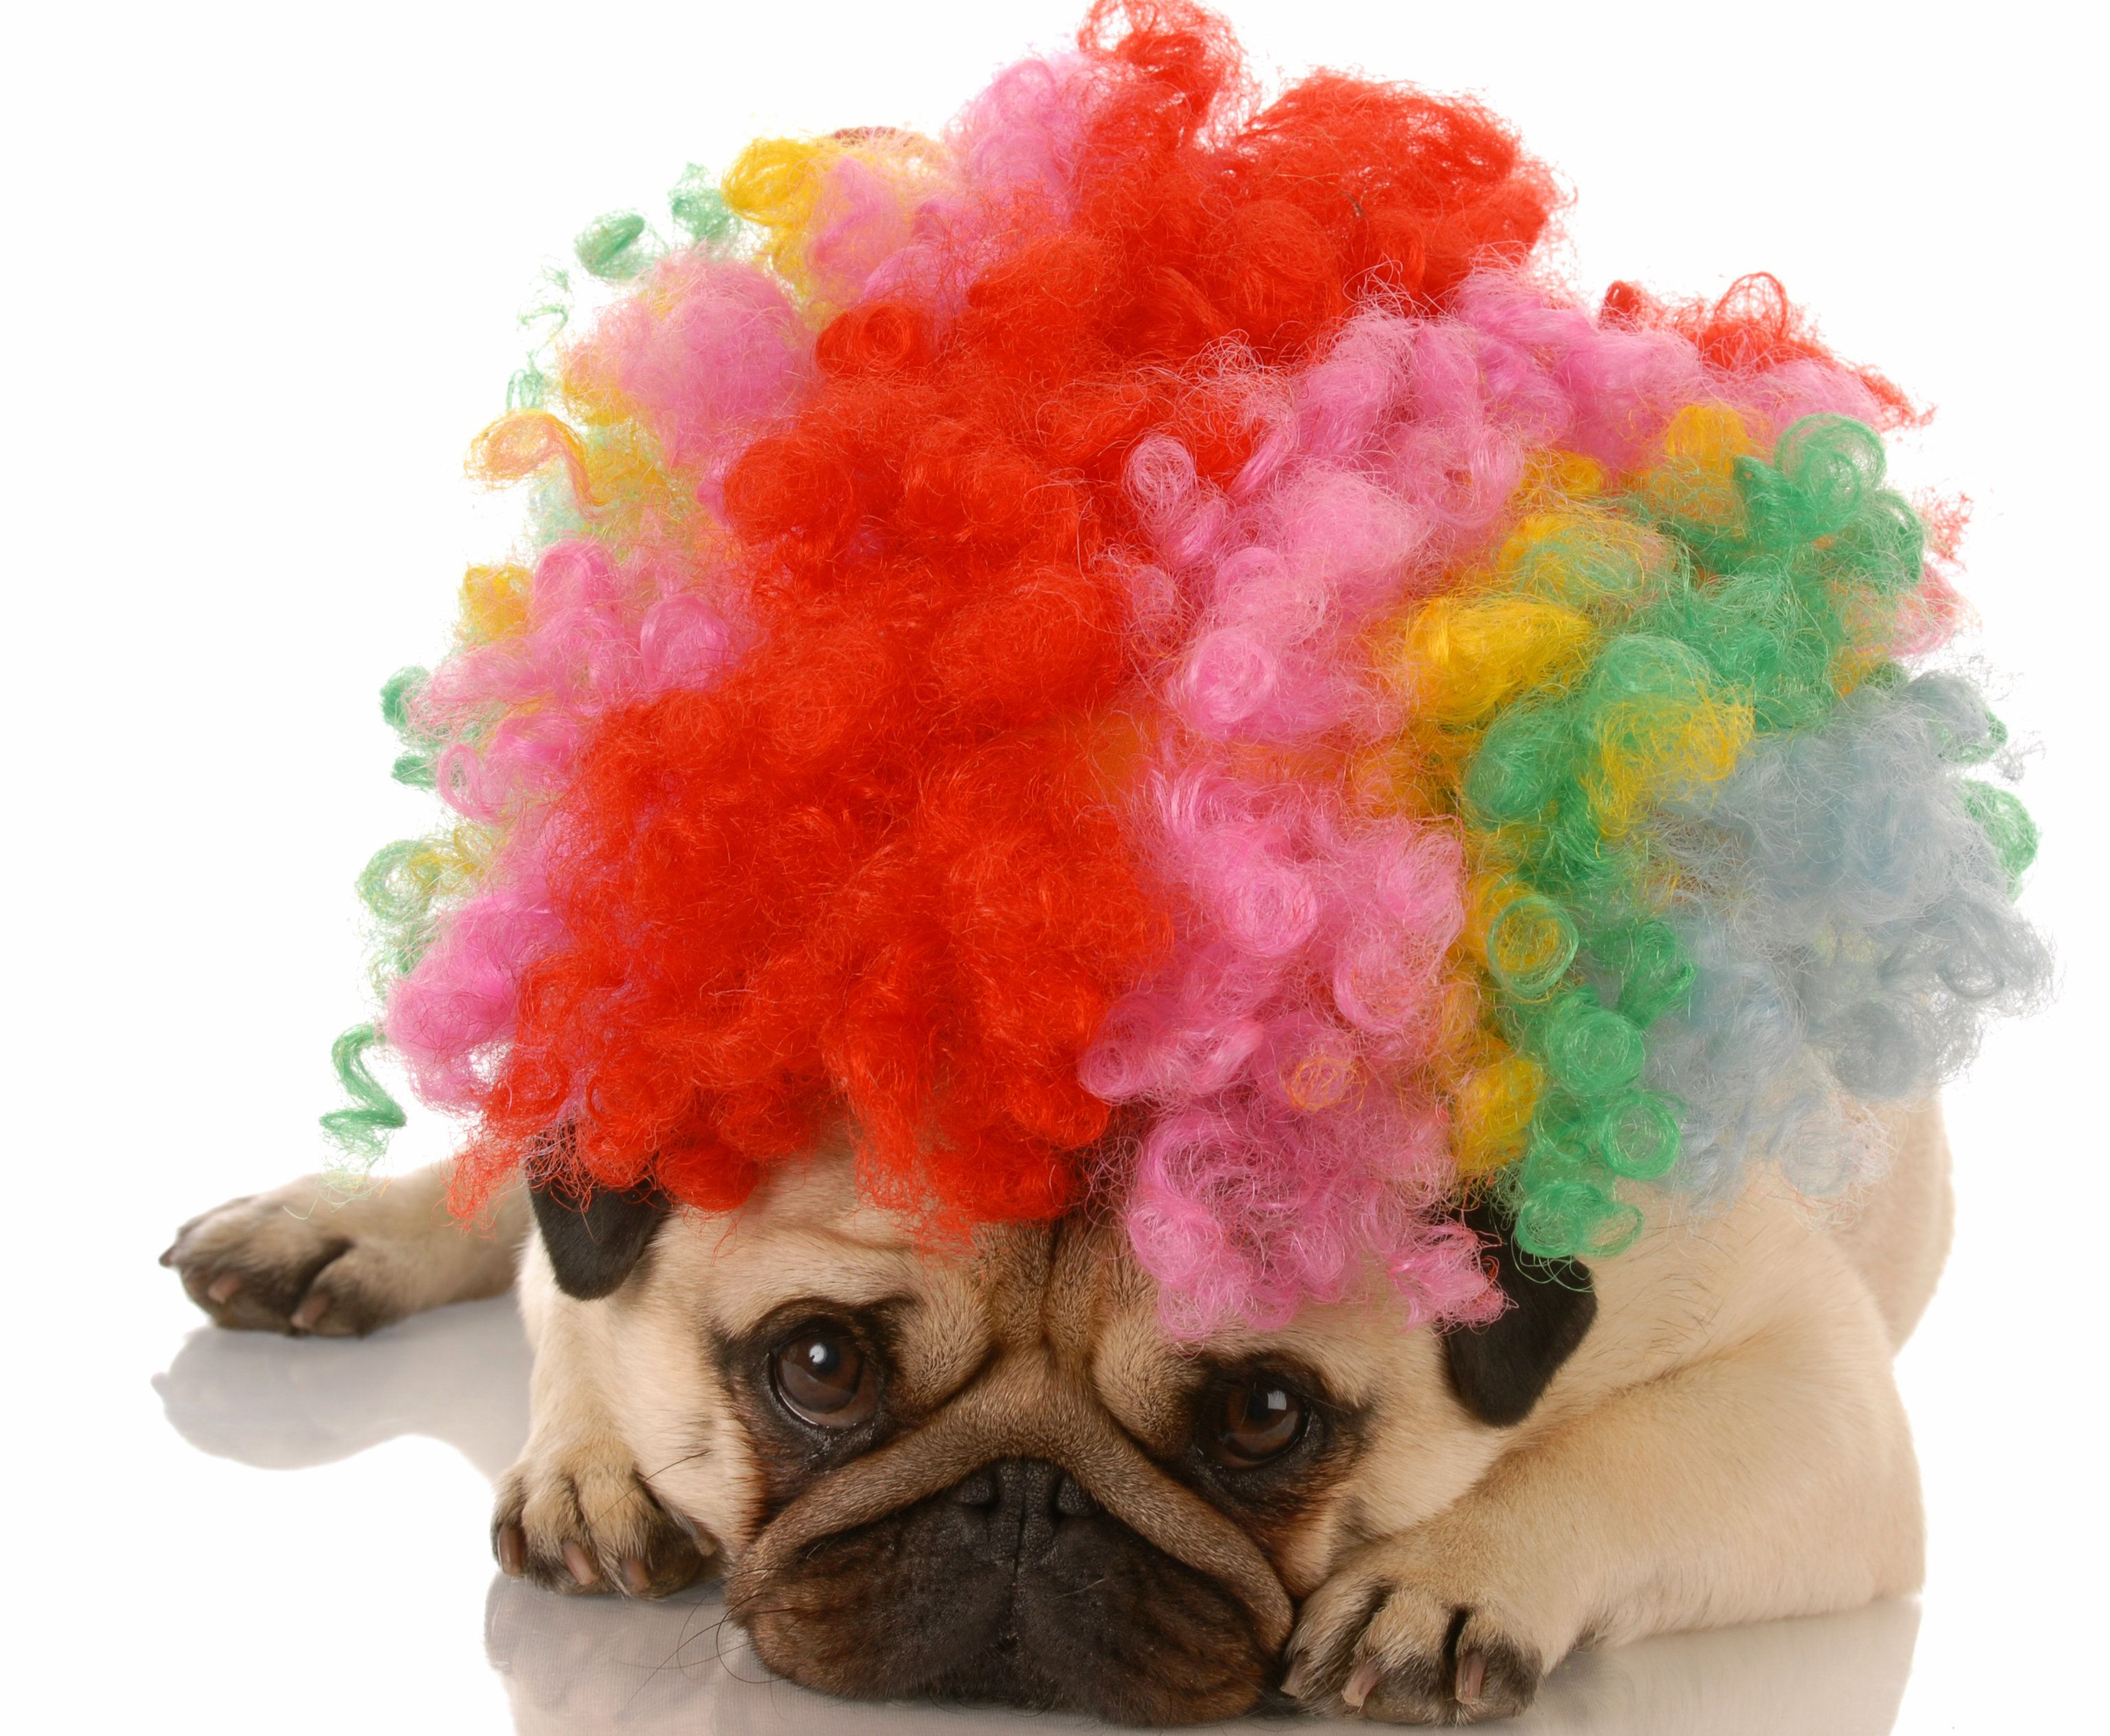 This pug doesn't get why people are so afraid of clowns these days.